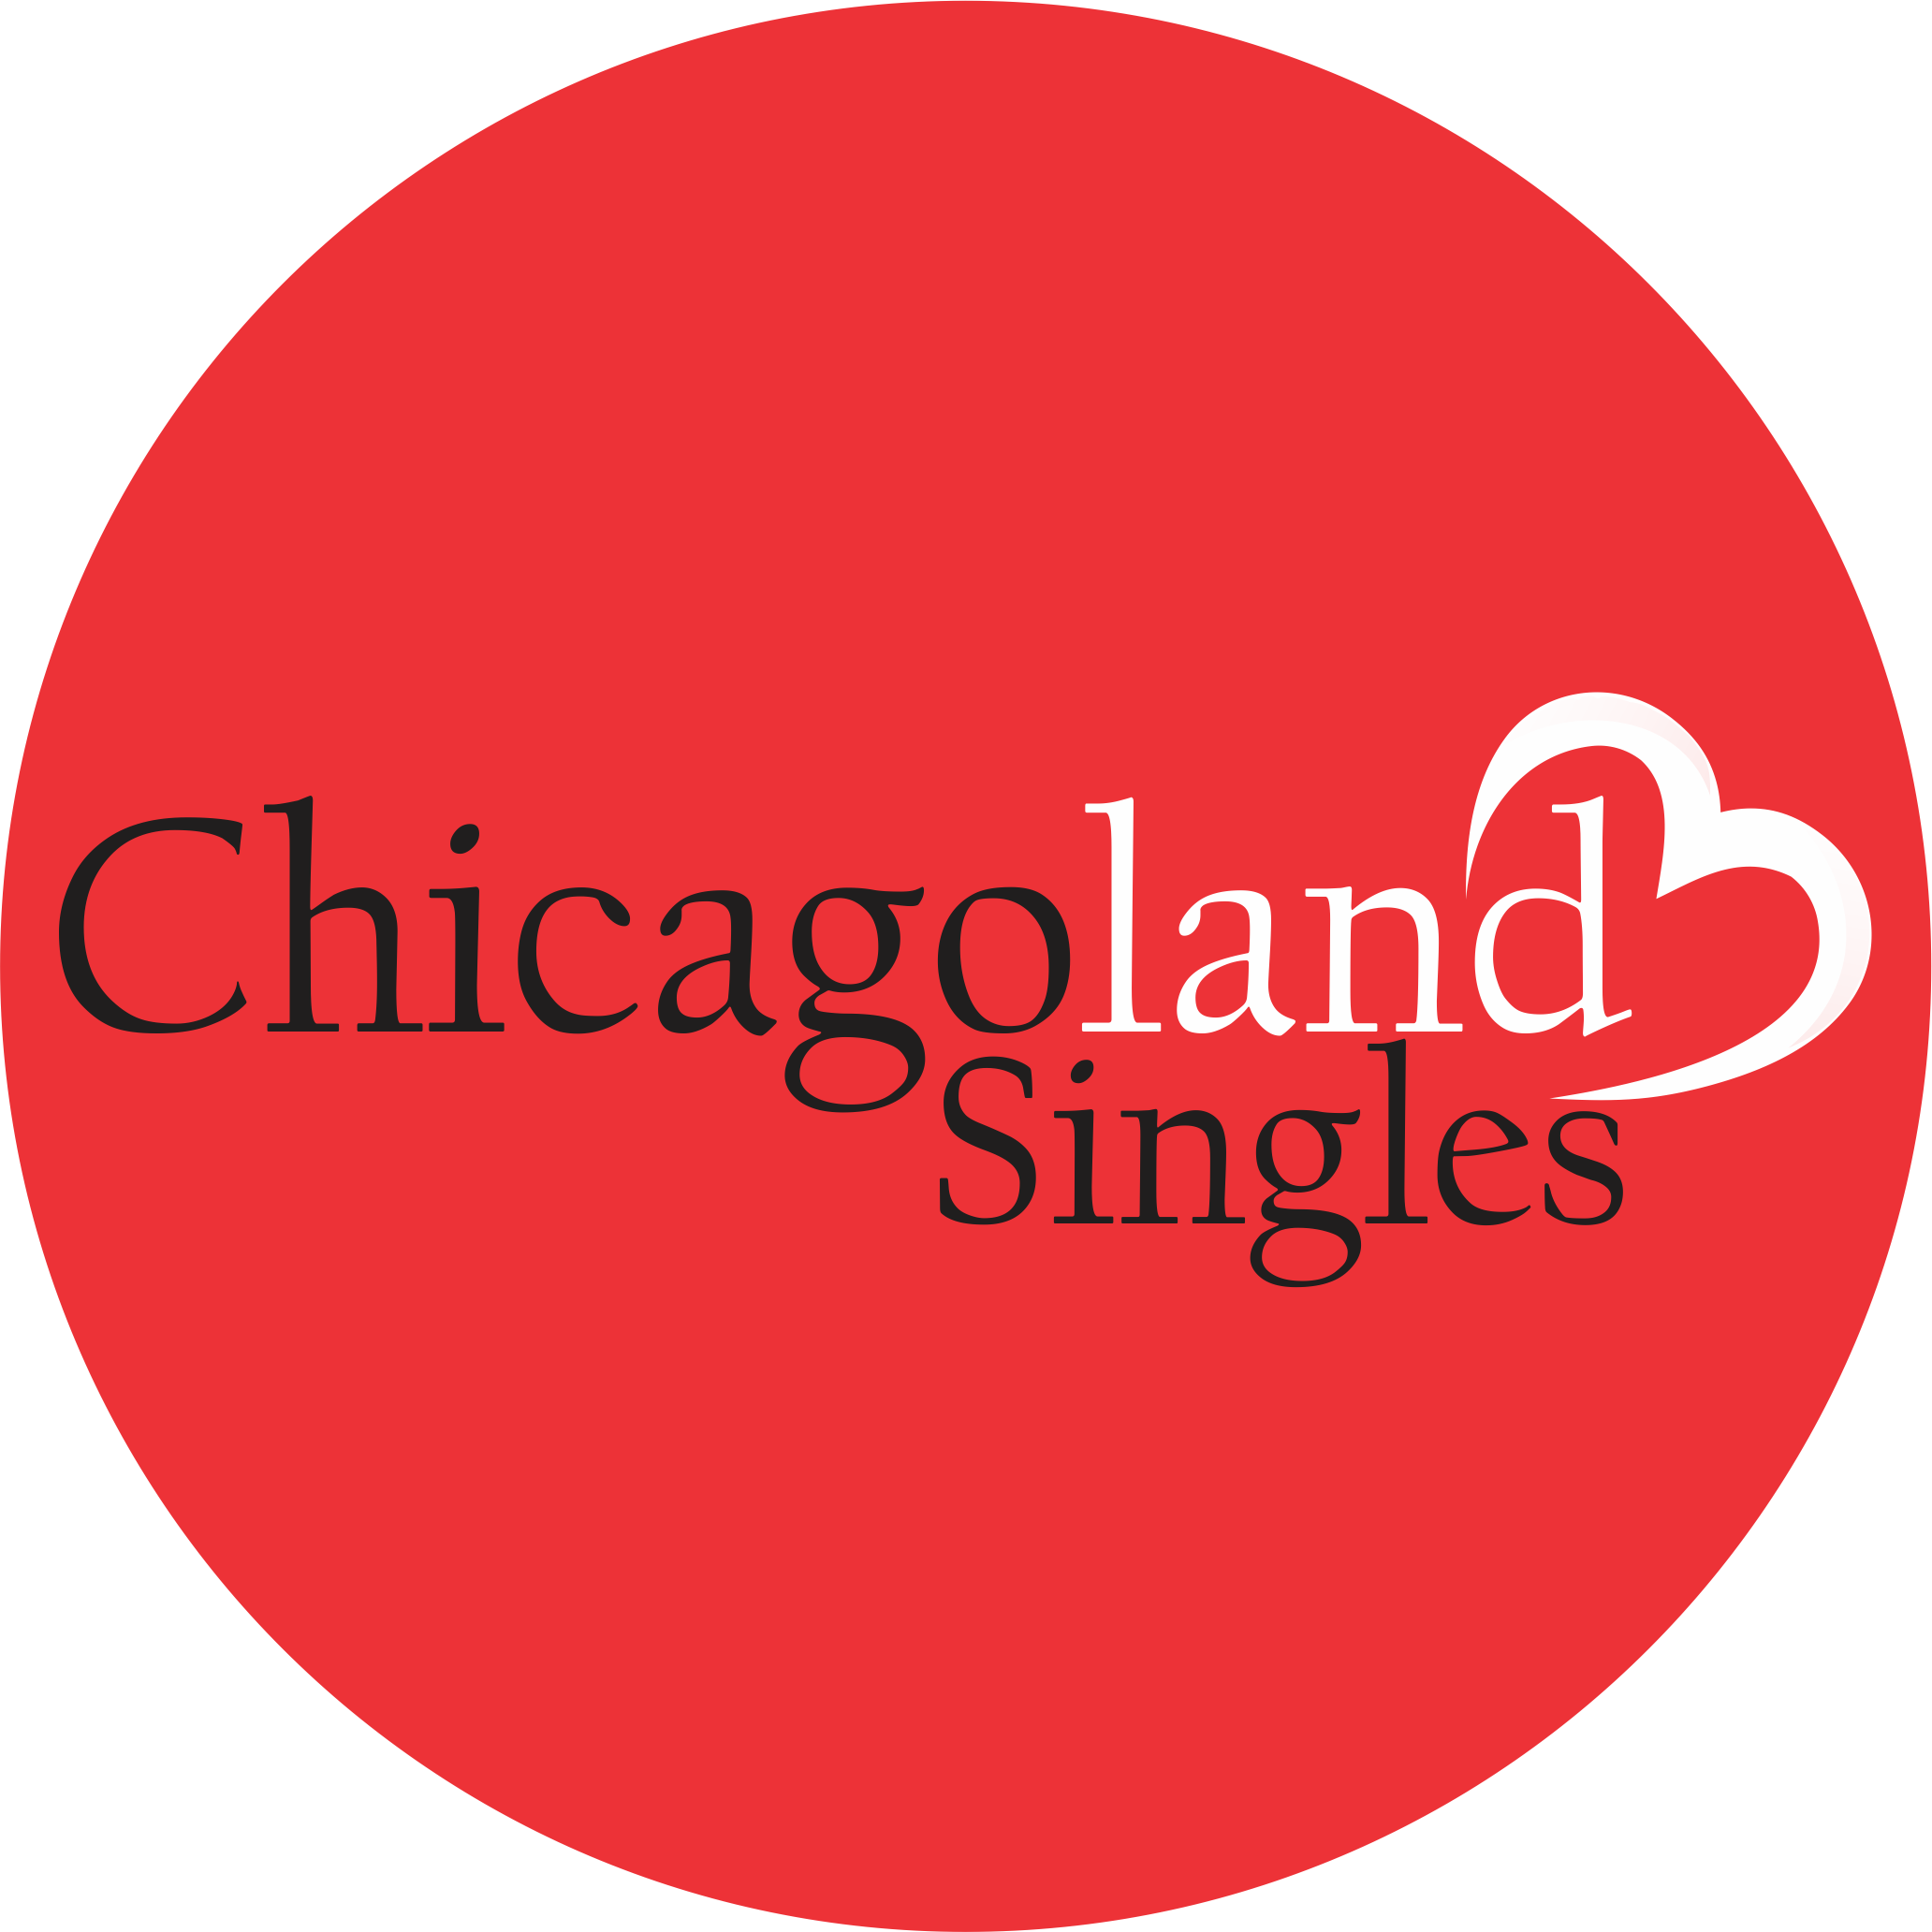 chicagoland singles